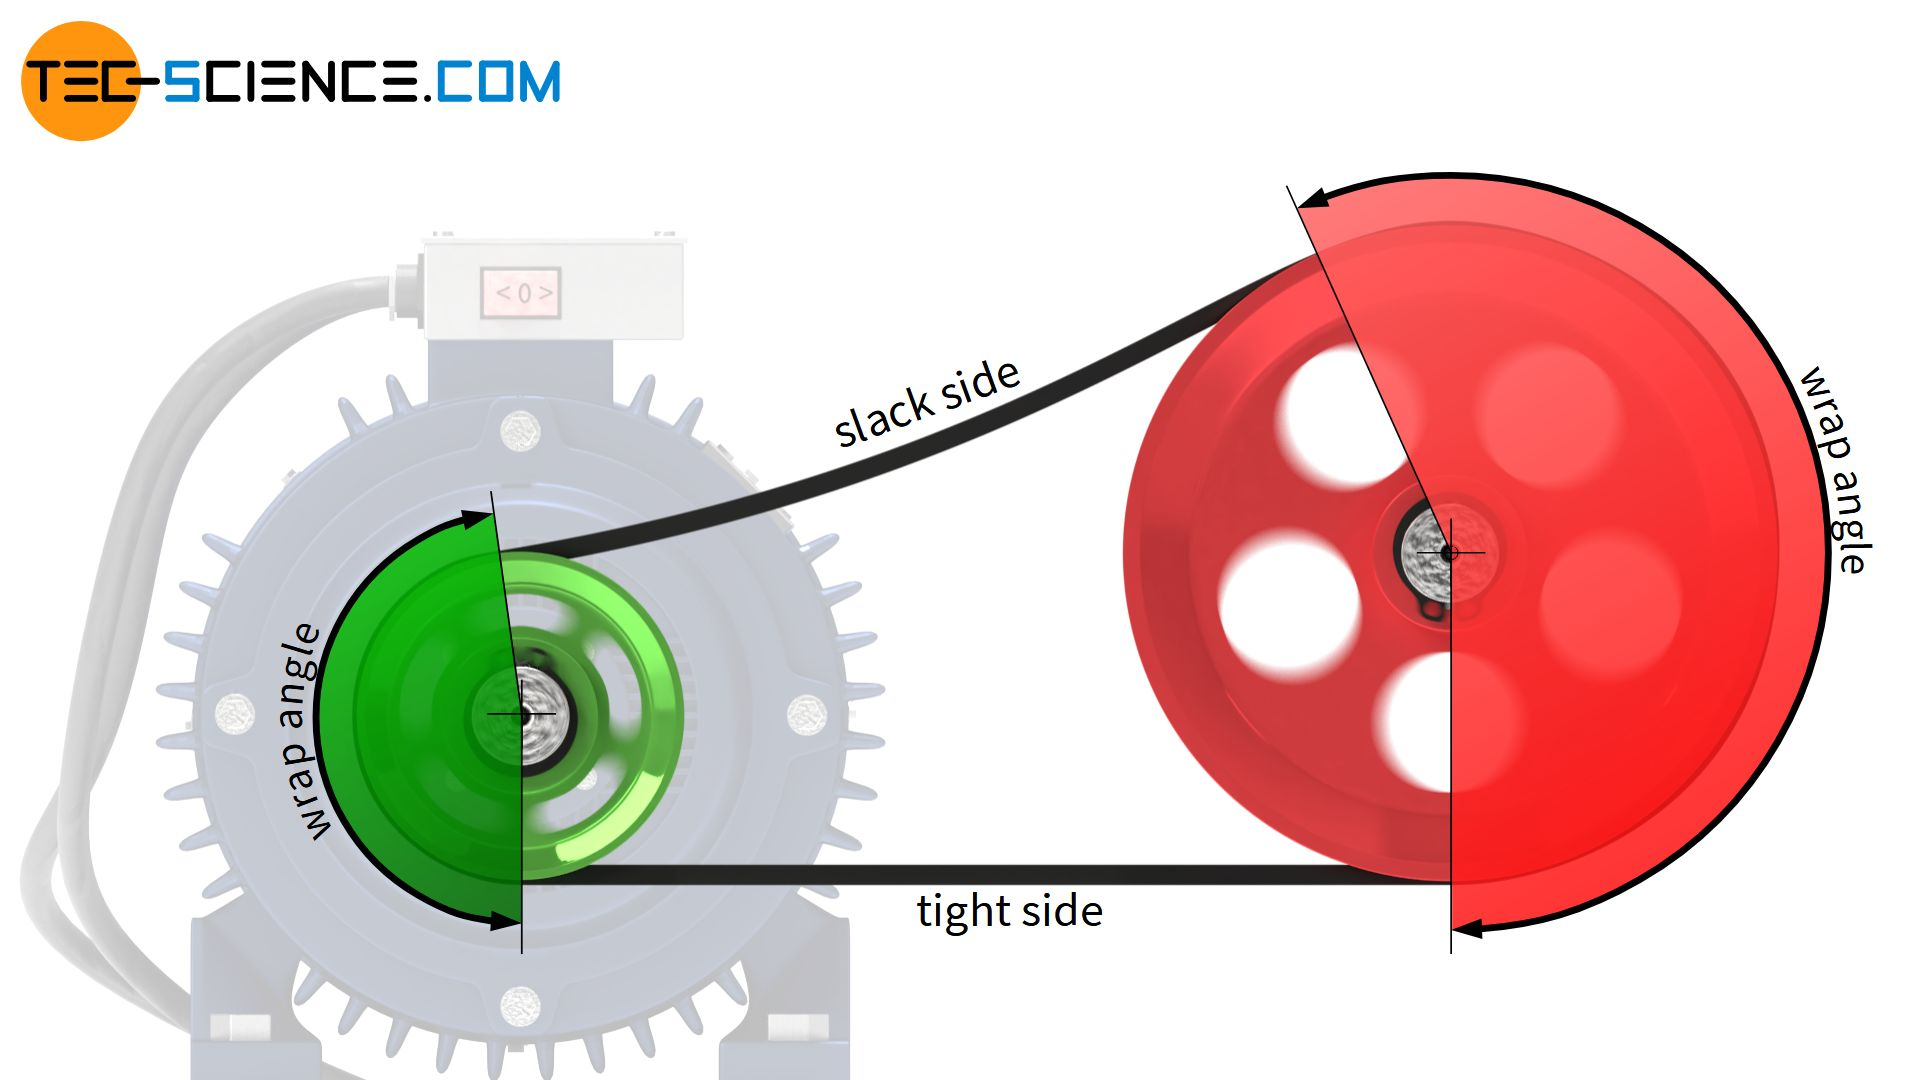 Influence of the arrangement of the slack side and tight side on the wrap angle